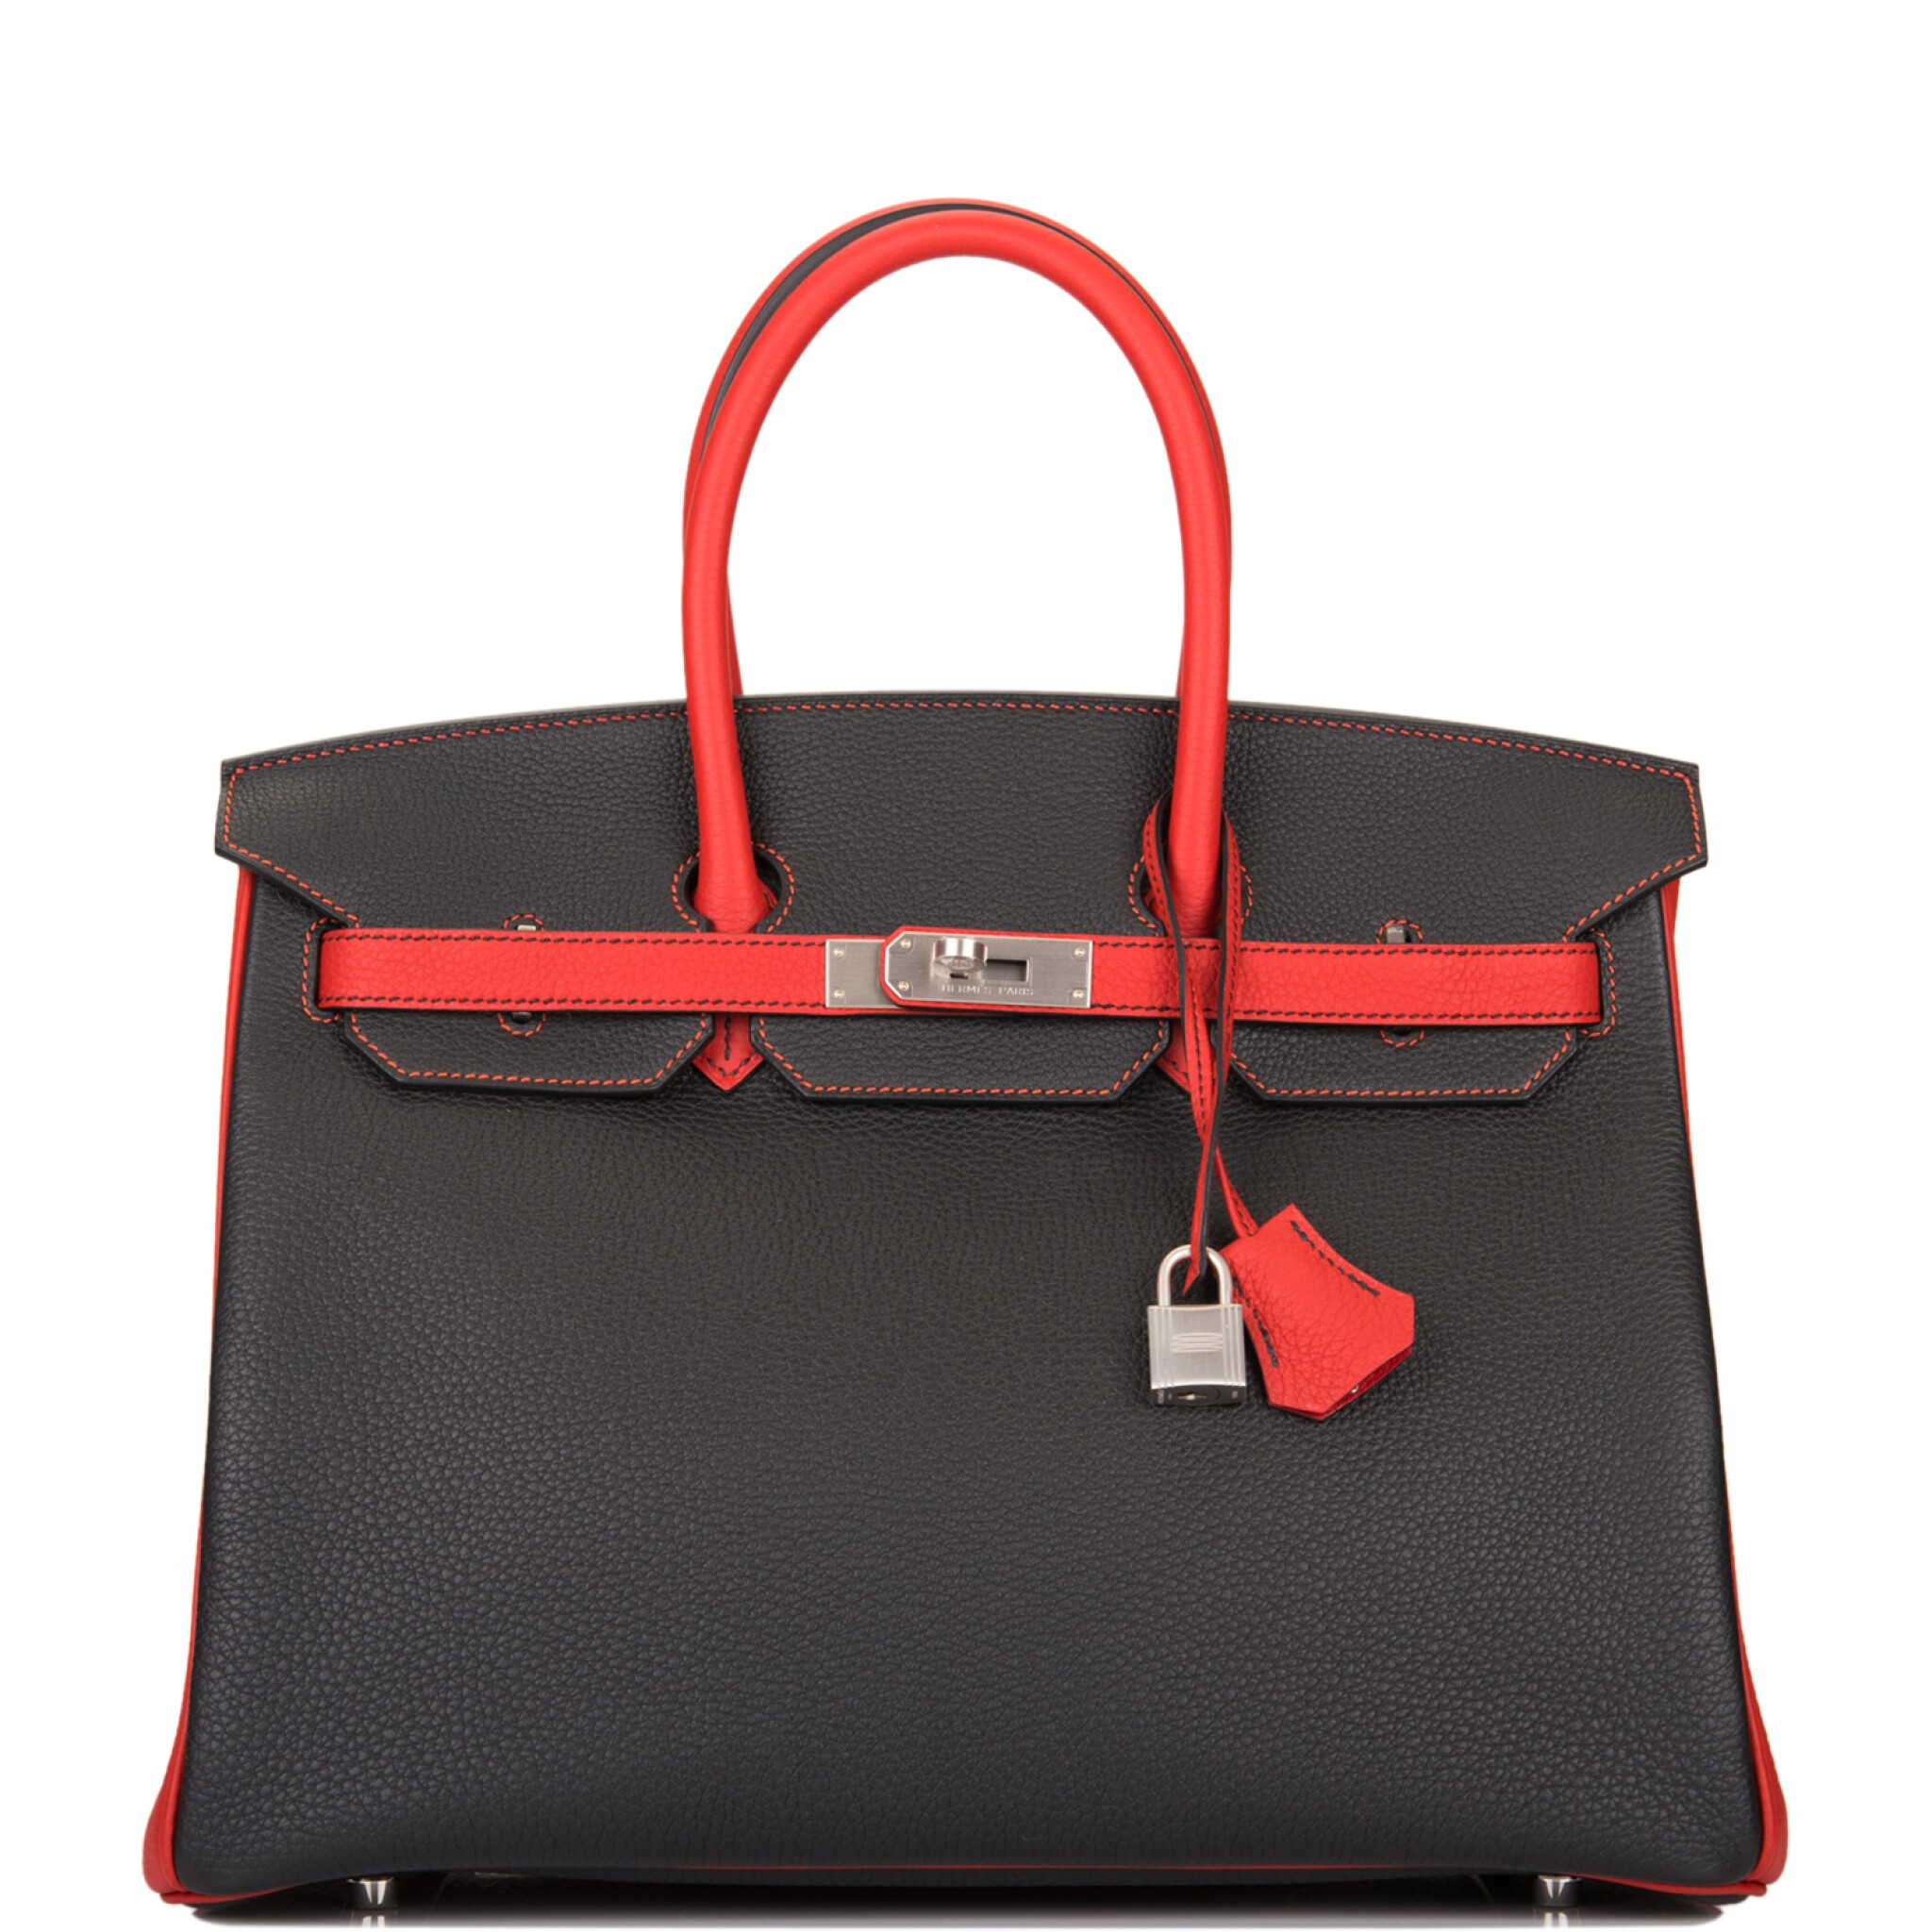 View full screen - View 1 of Lot 43. HERMÈS   HORSESHOE STAMPED (HSS) BICOLOR BLACK AND VERMILLION BIRKIN 35CM OF TOGO LEATHER WITH BRUSHED PALLADIUM HARDWARE.